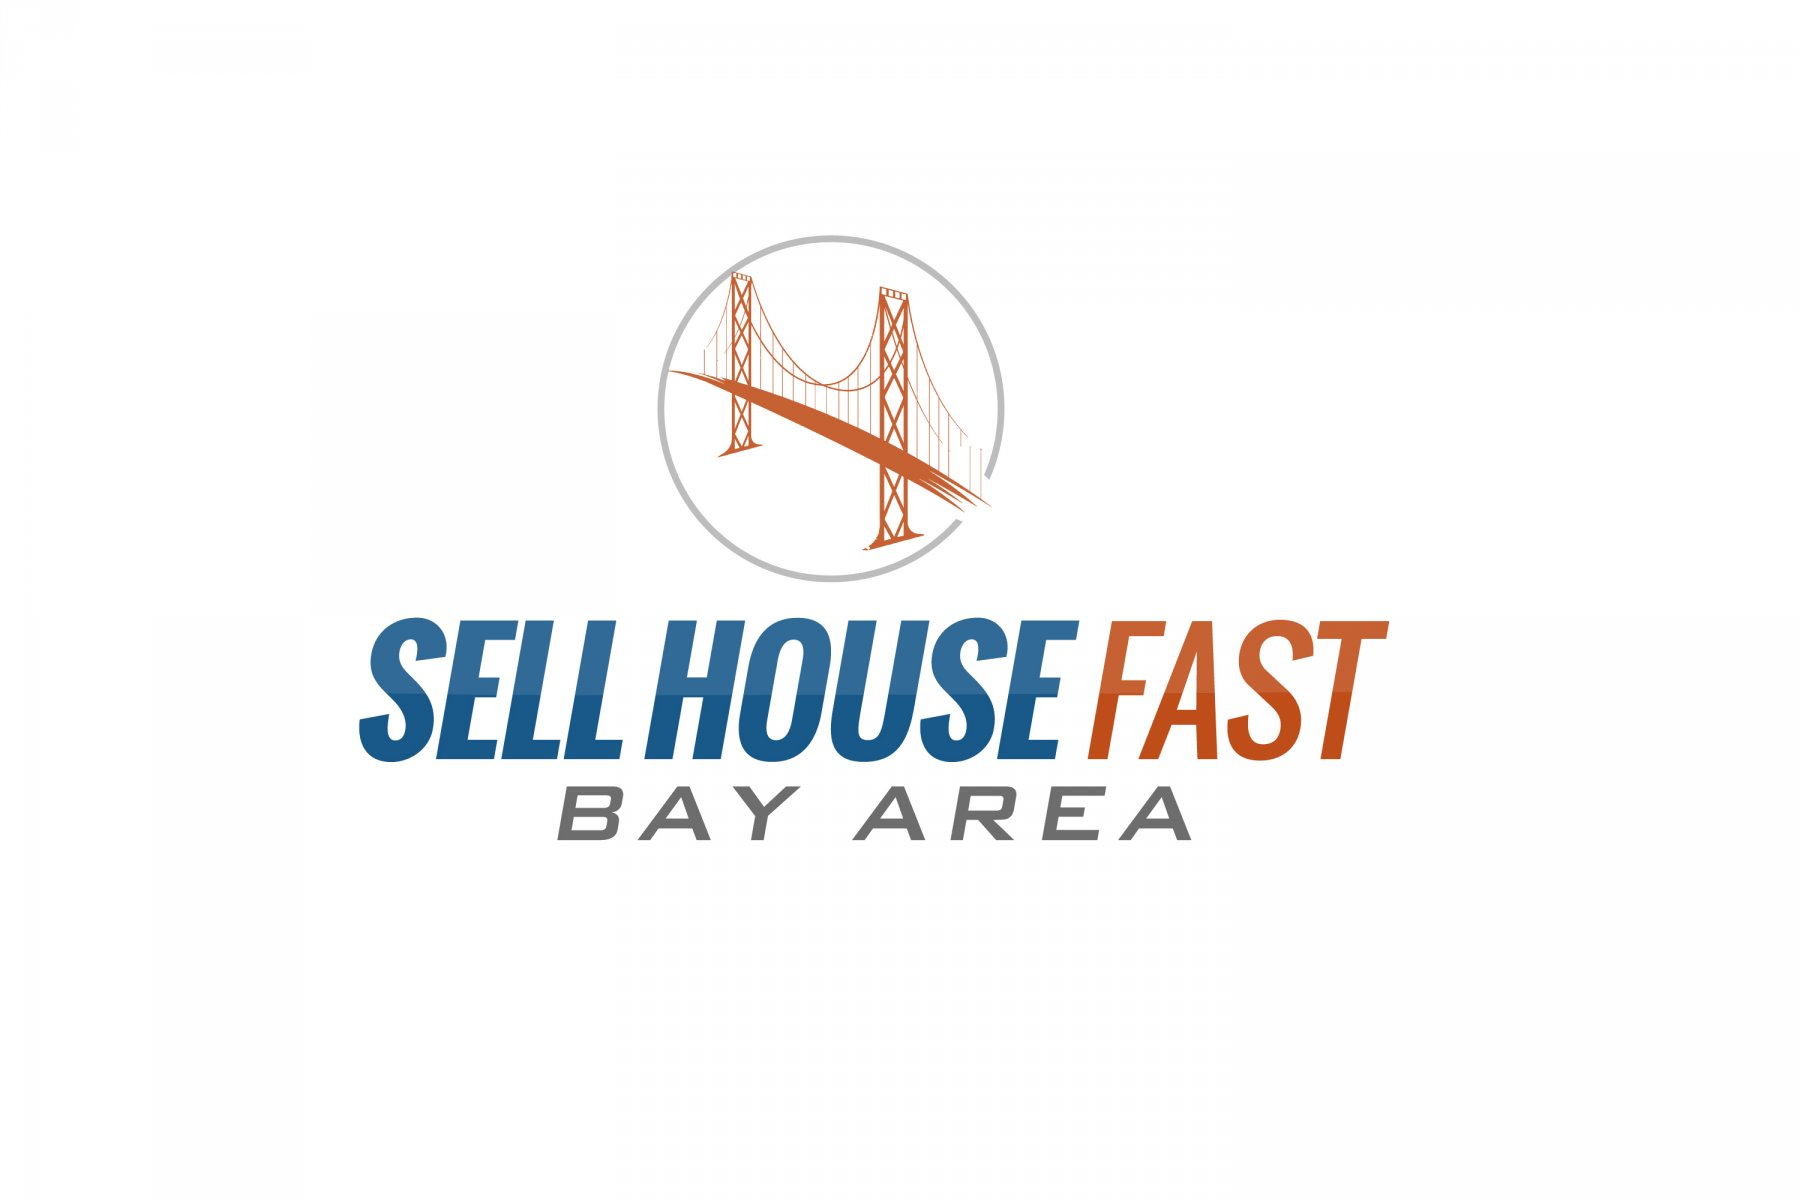 Sell House Fast Bay Area logo